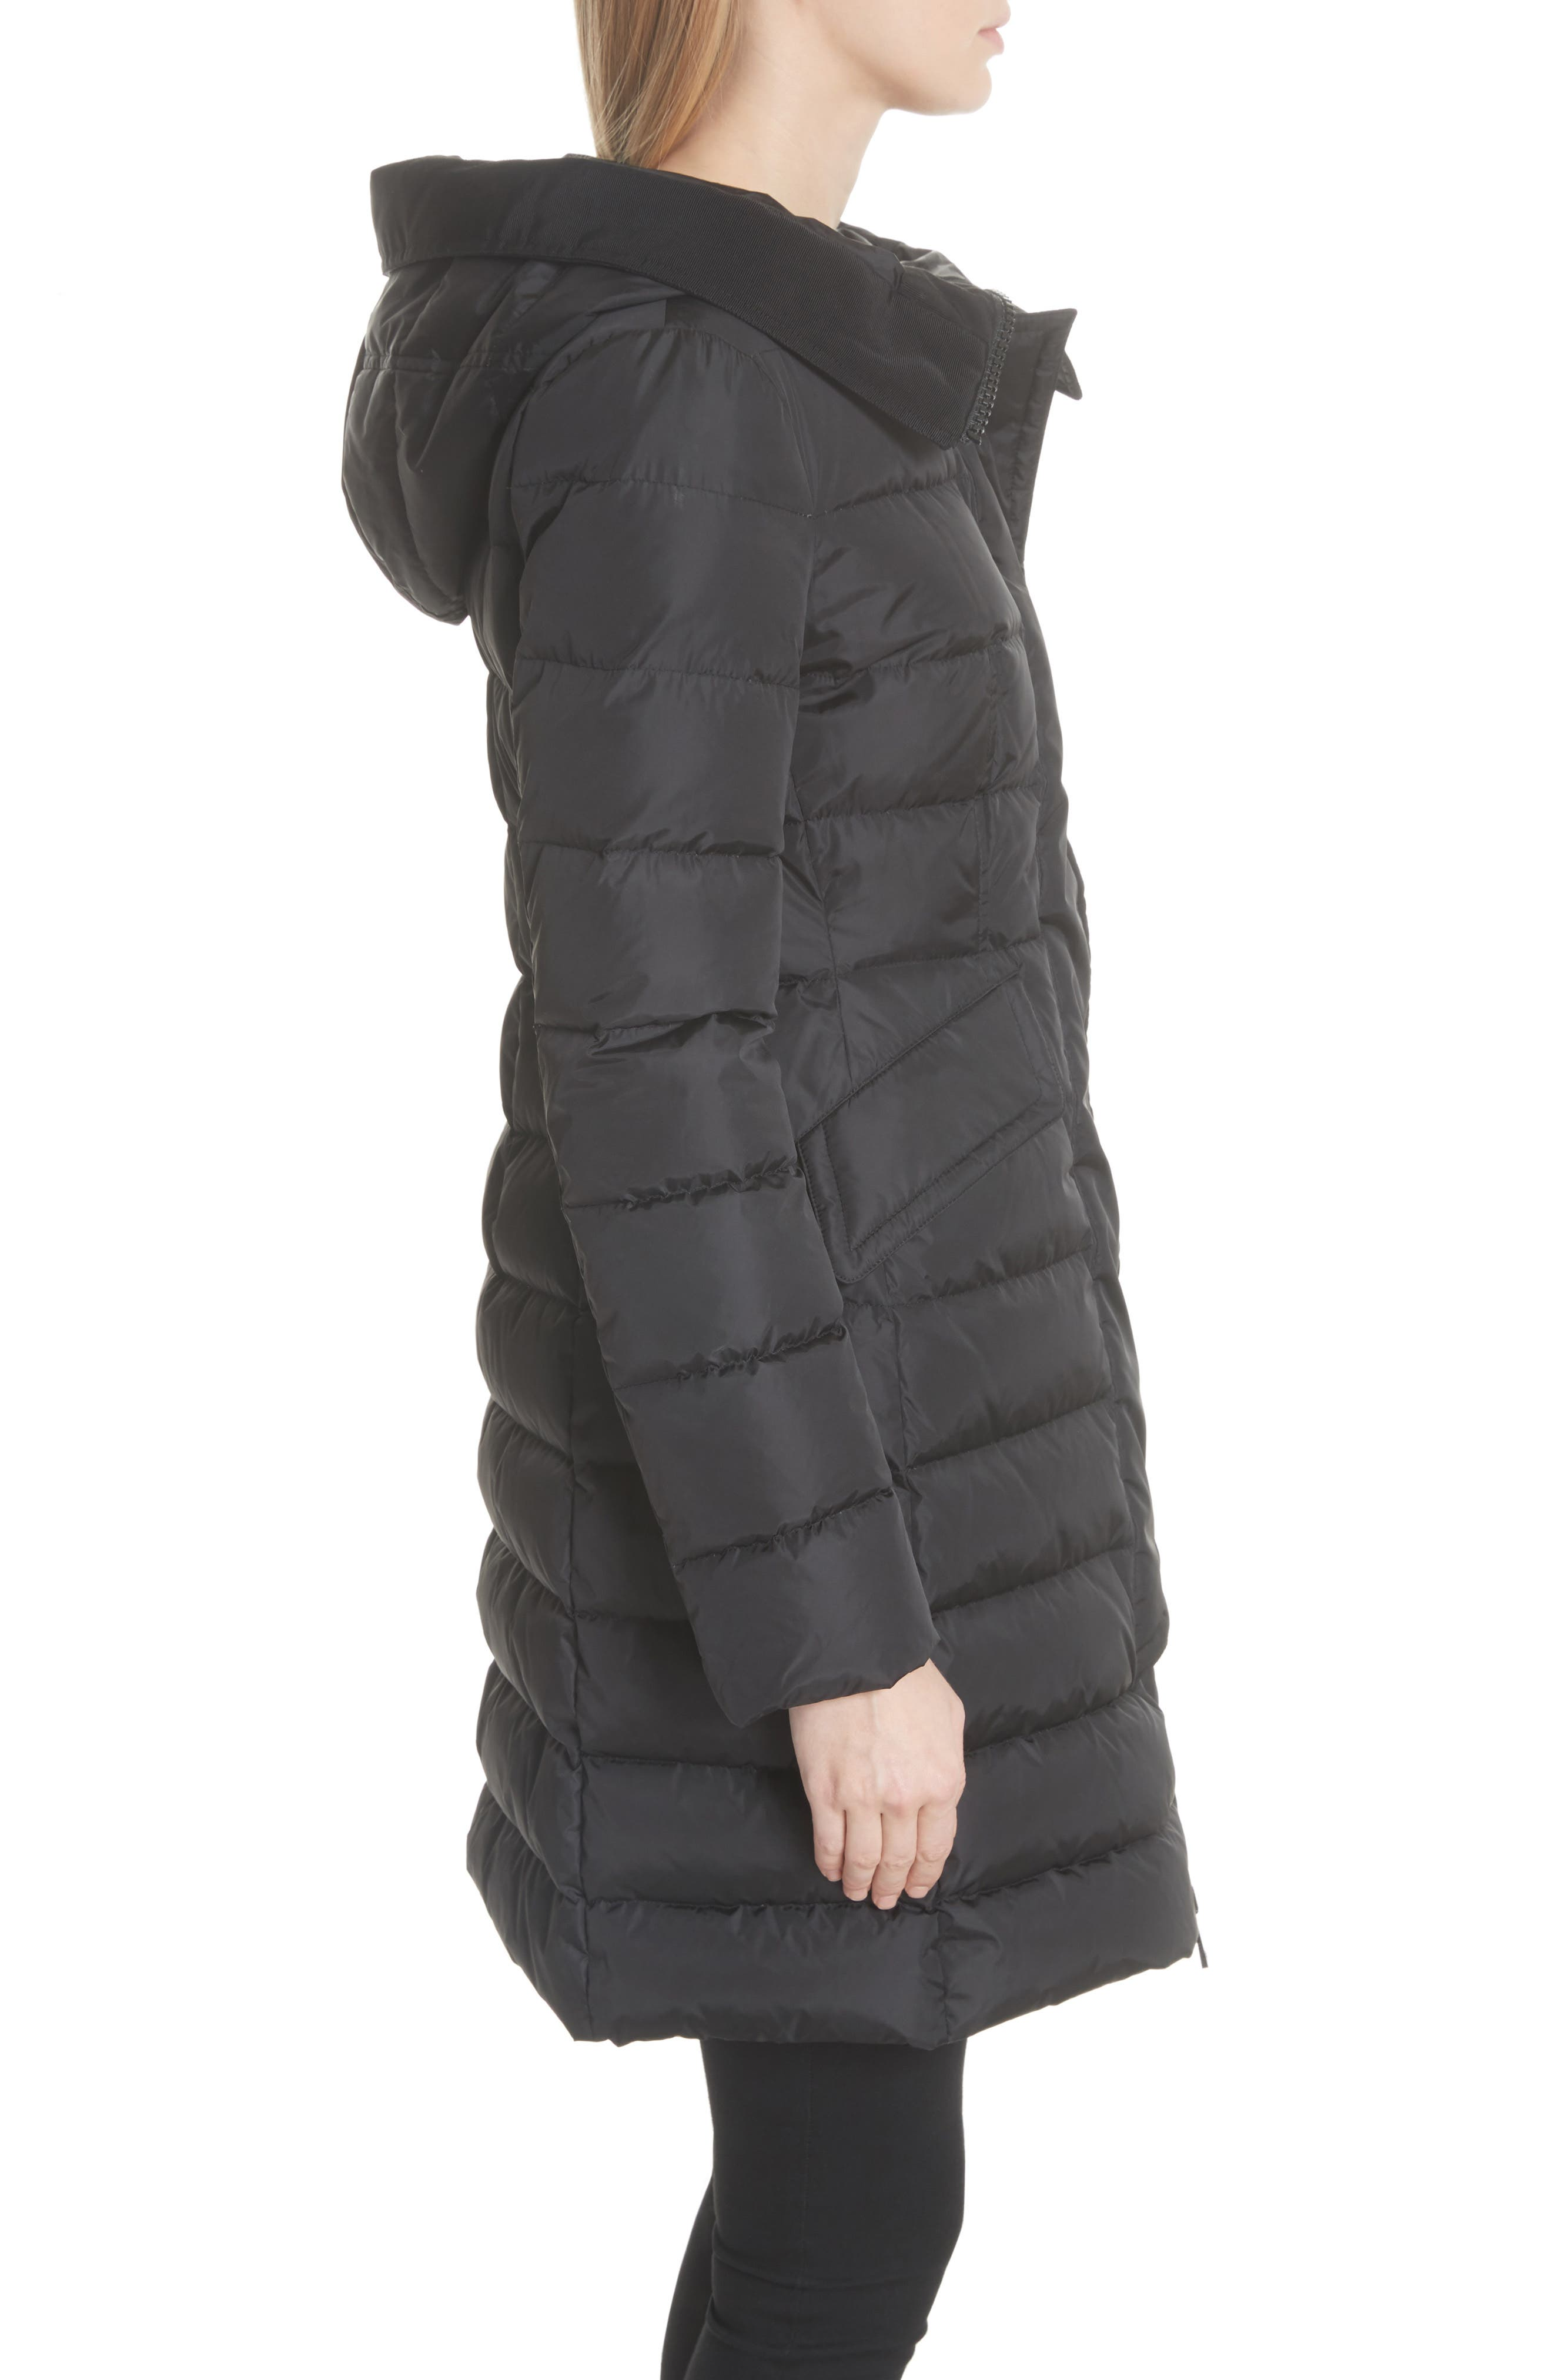 MONCLER, Grive Hooded Down Coat, Alternate thumbnail 3, color, NAVY